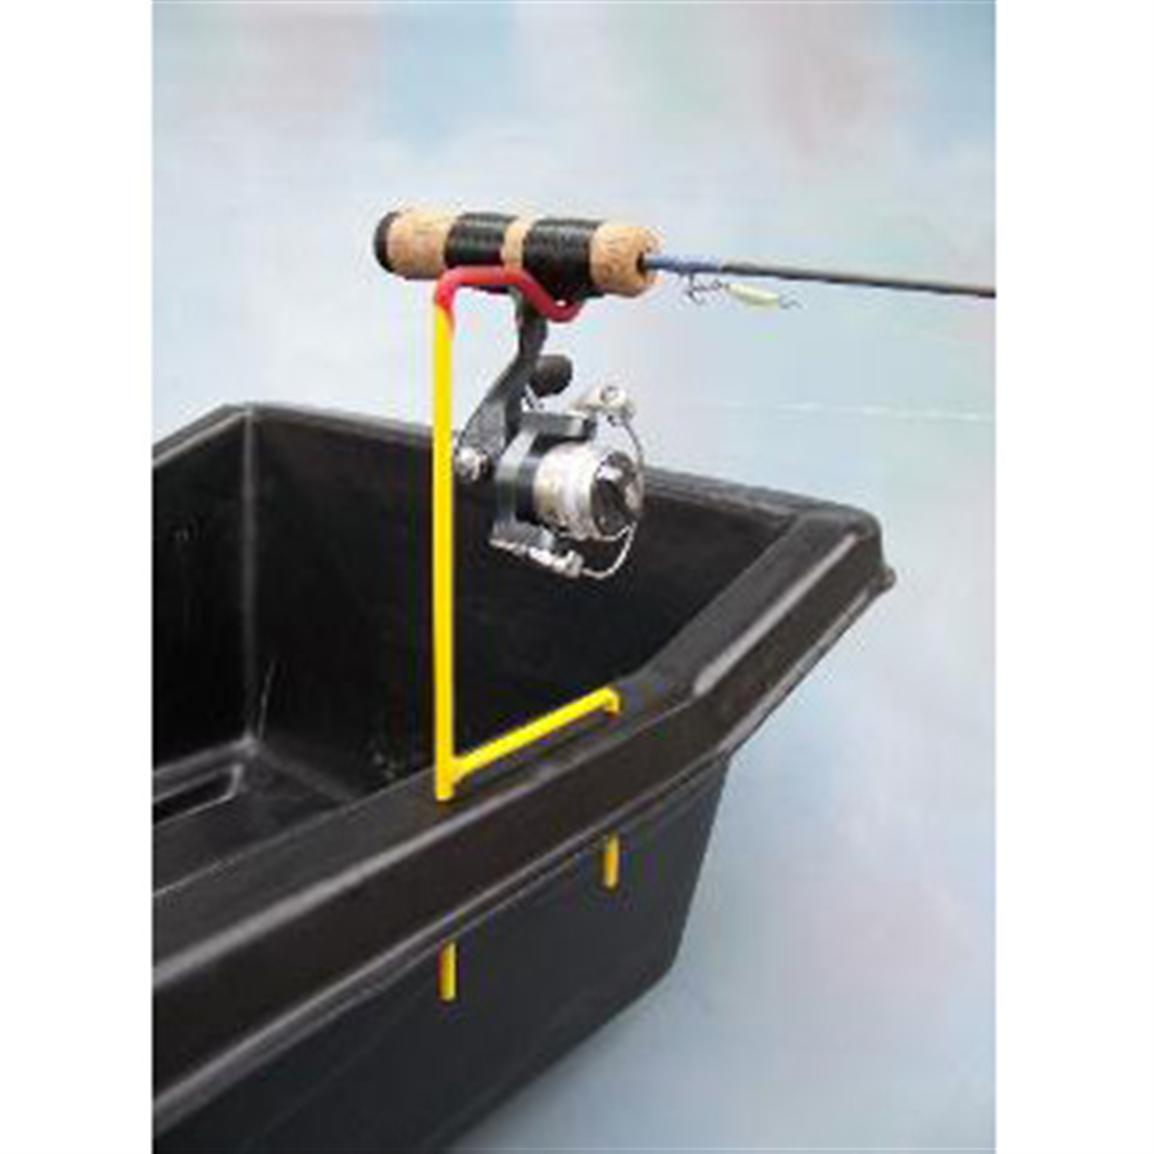 Today 39 s tackle rod rocker 2 218491 ice fishing gear at for Ice fishing gear list